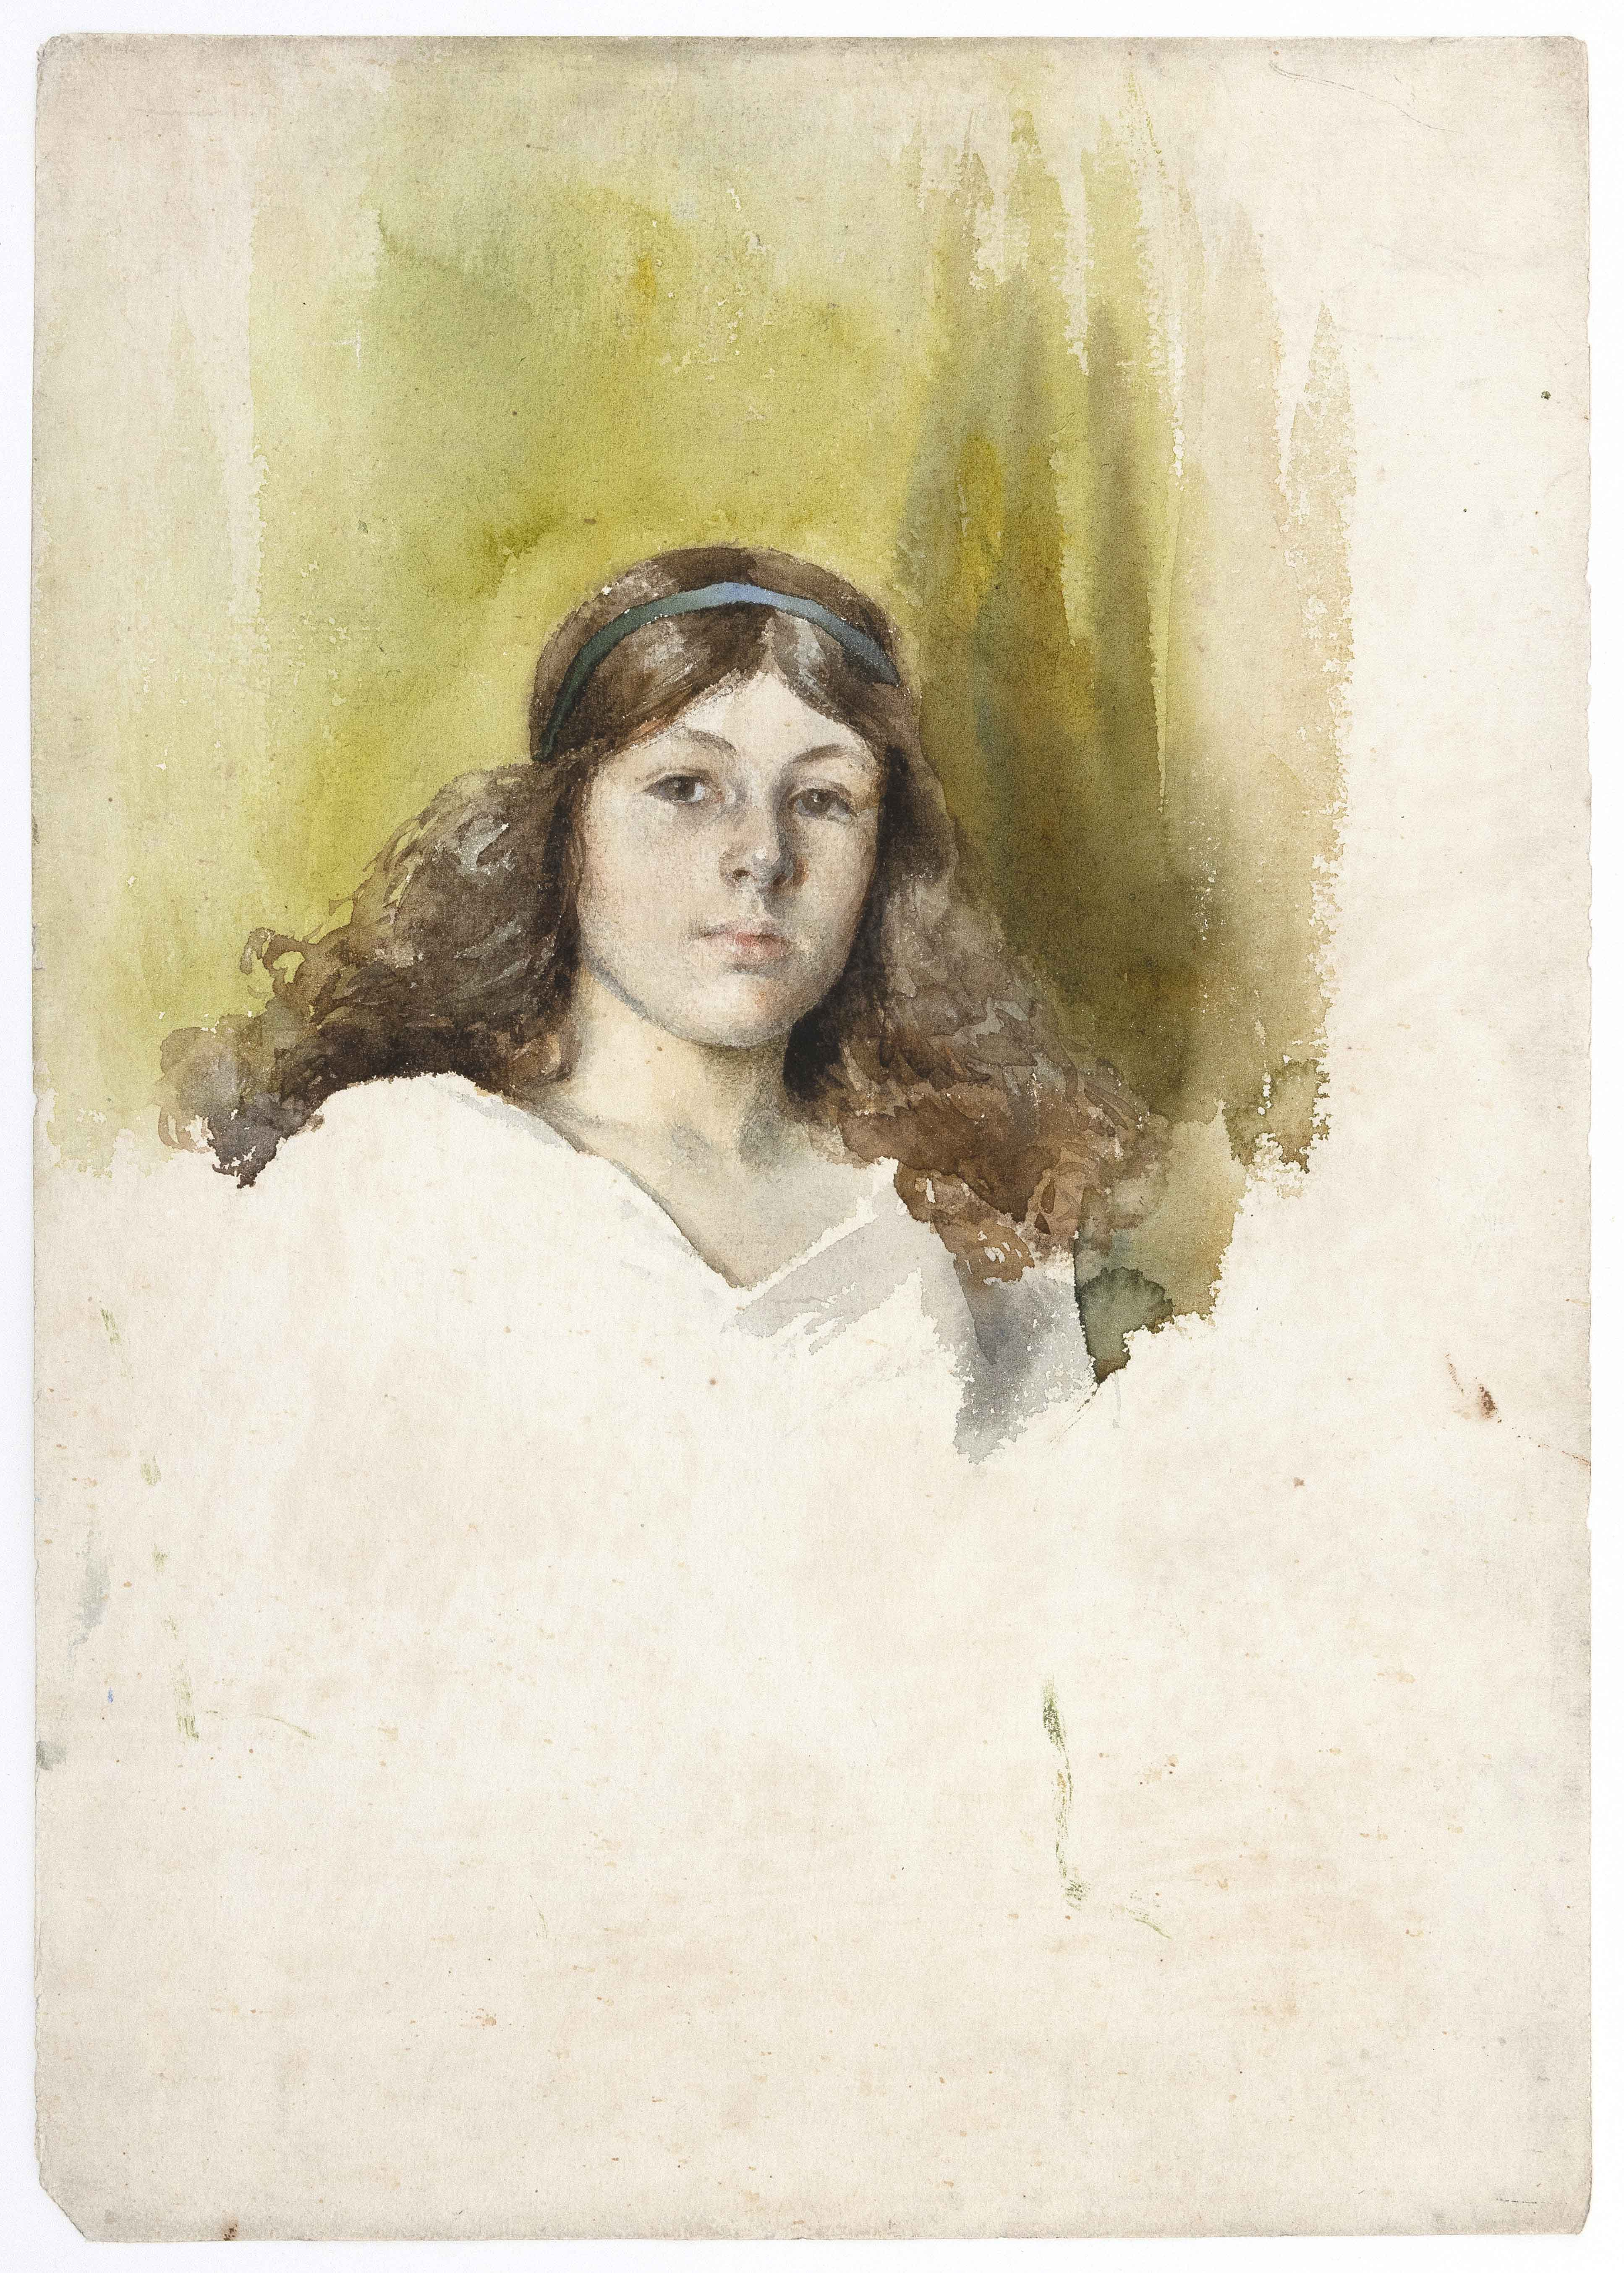 ATTRIBUTED TO LYDIA FIELD EMMET (New York, 1866-1952), Portrait of a young girl., Watercolor on paper, 15